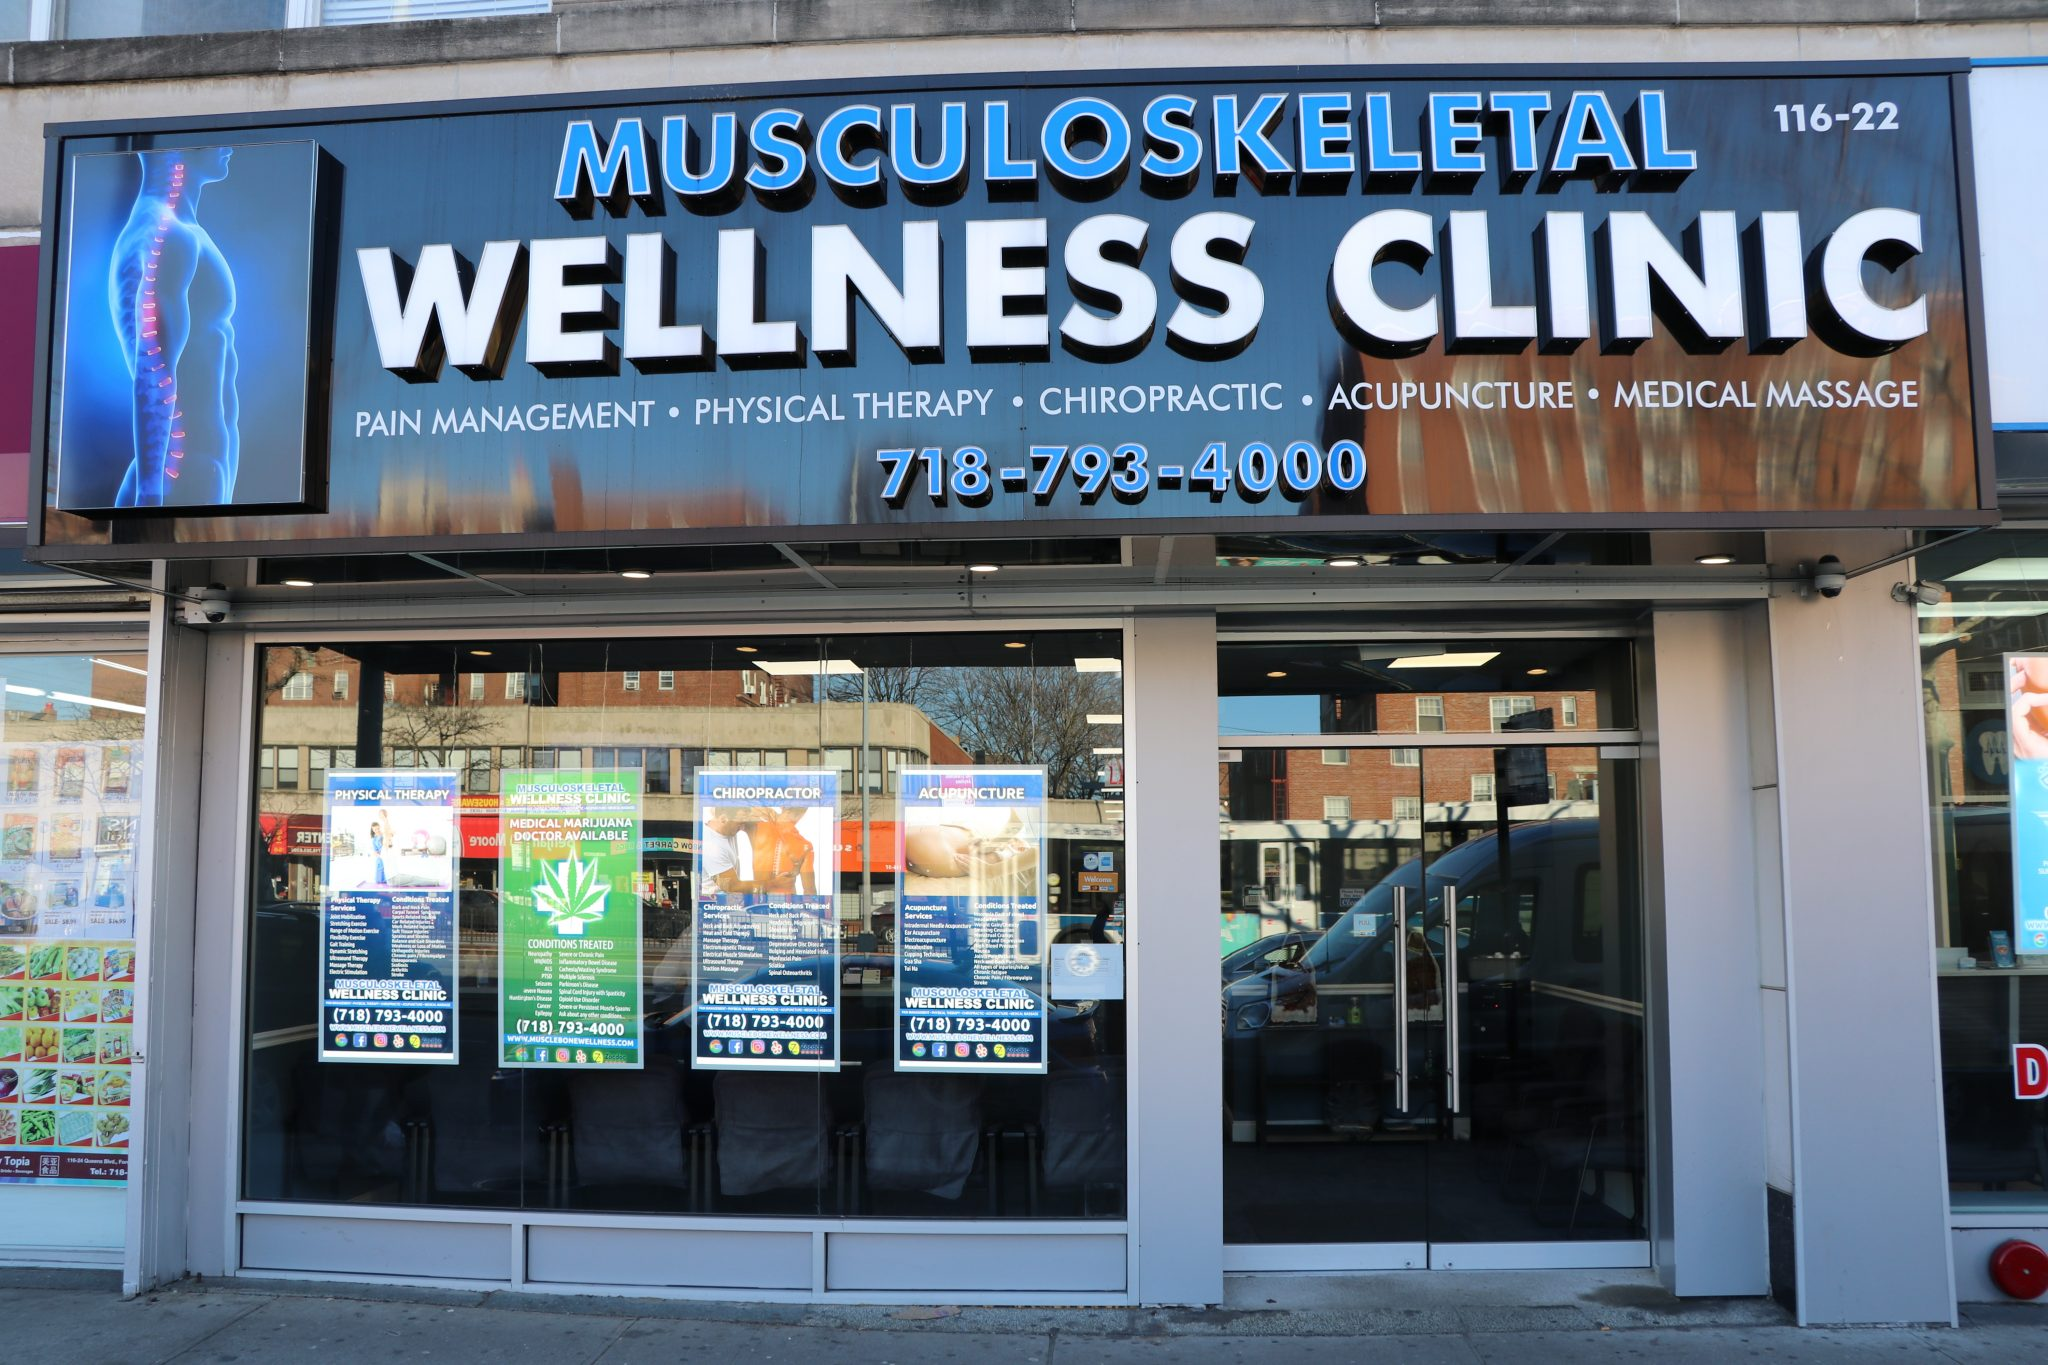 Musculoskeletal Wellness Clinic | Acupuncture | Physical Therapy | Chiropractor | Pain Management | Forest Hills, NY